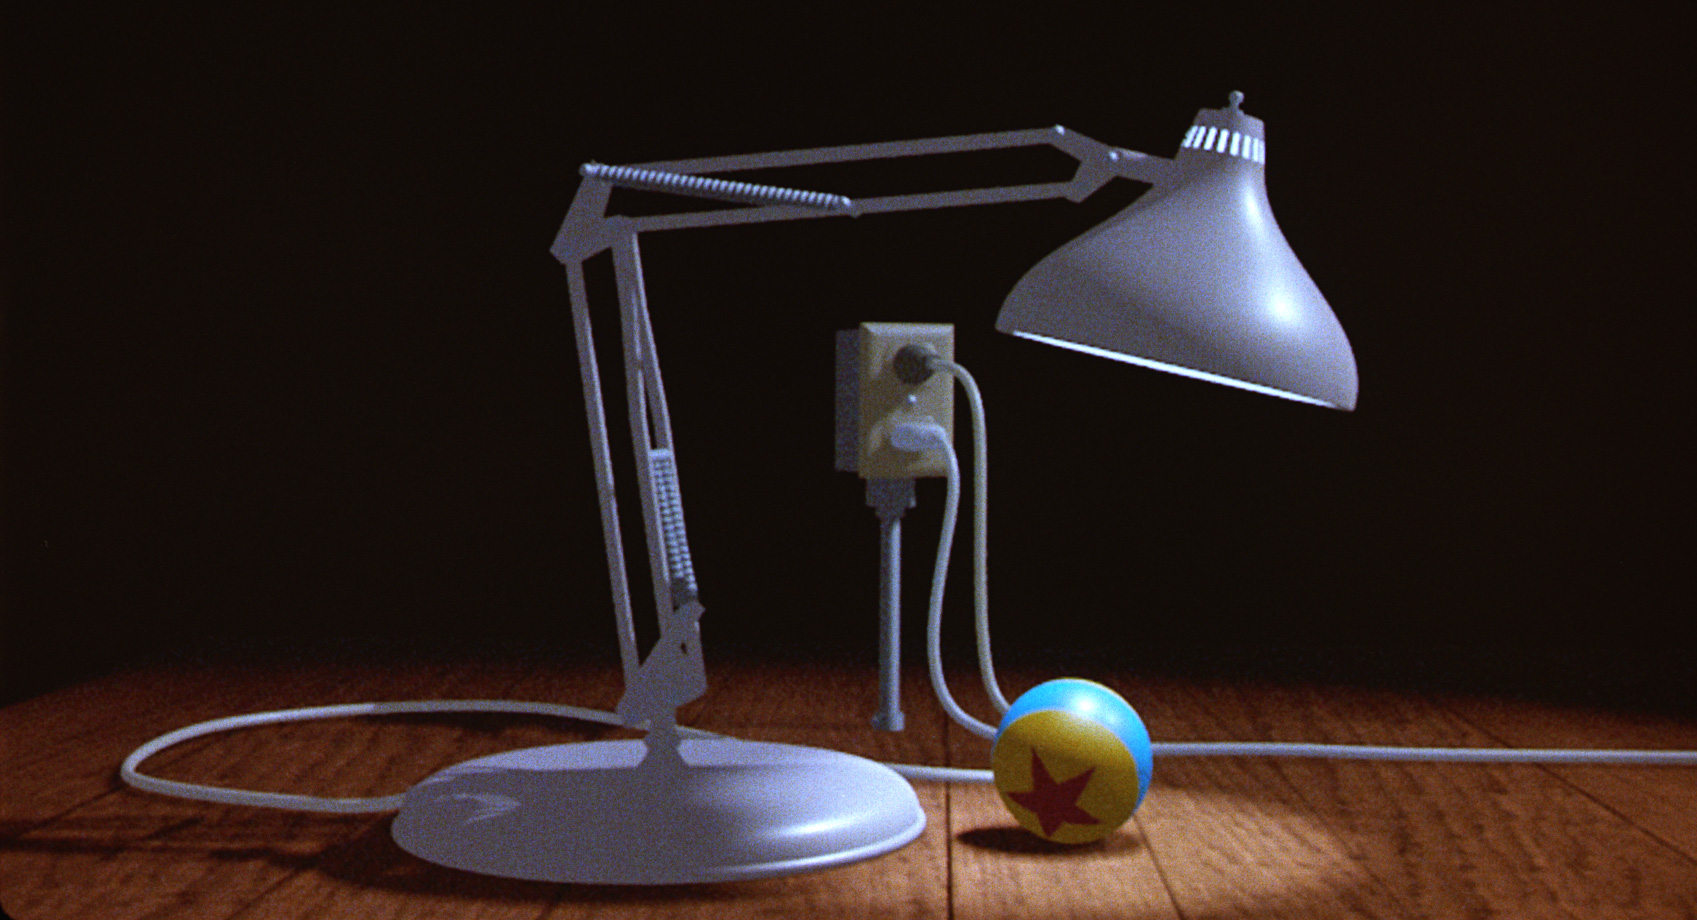 The Pixar lamp is the greatest cinematic lamp (brought to you by Lampo Inc. Lamps) screenshot